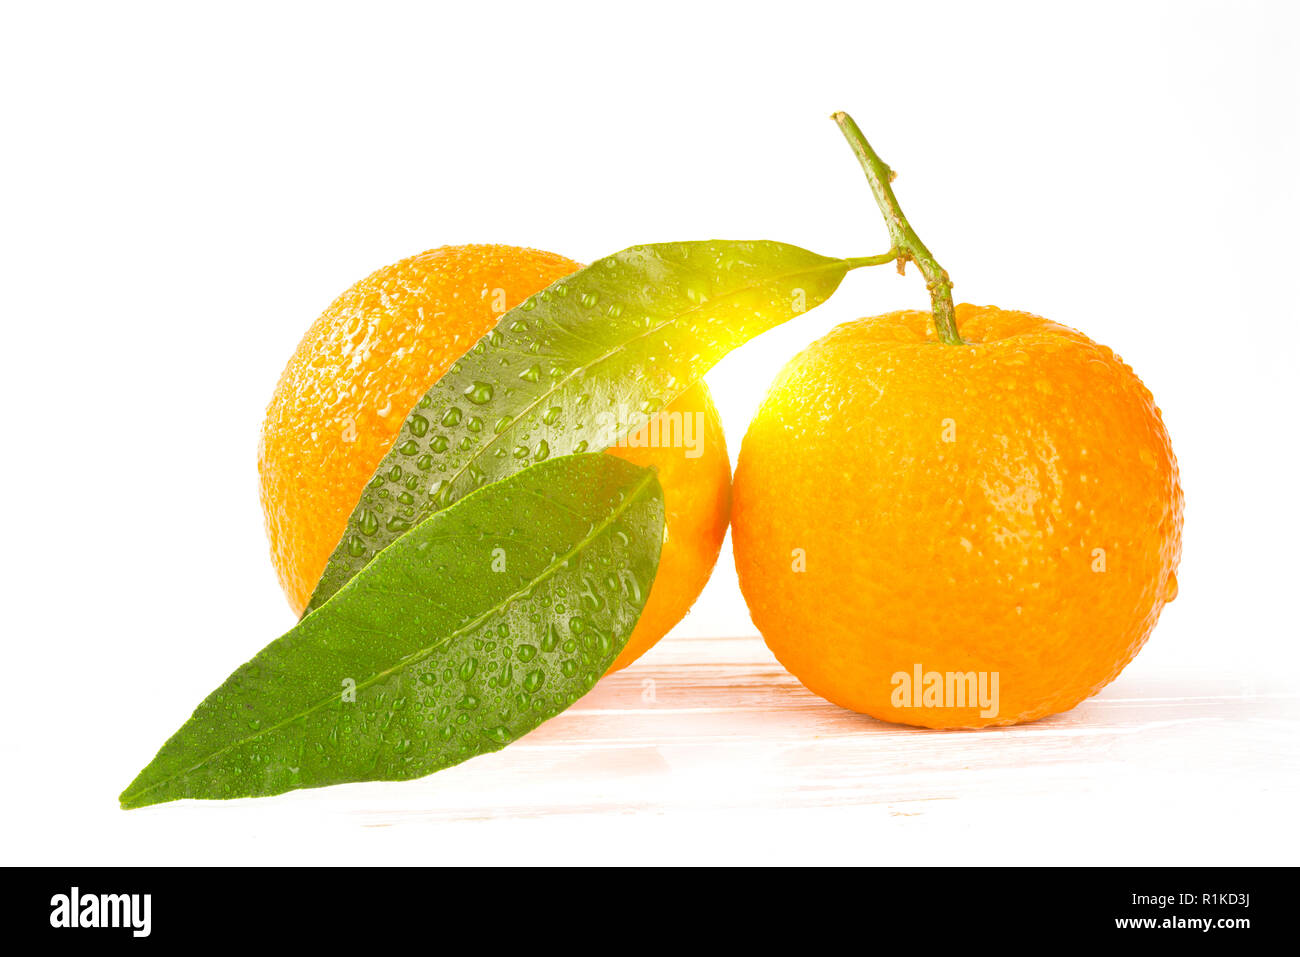 Tangerines with leaves and water drops on white wooden background, closeup with sunshine between the  both fruits and leaves - Stock Image